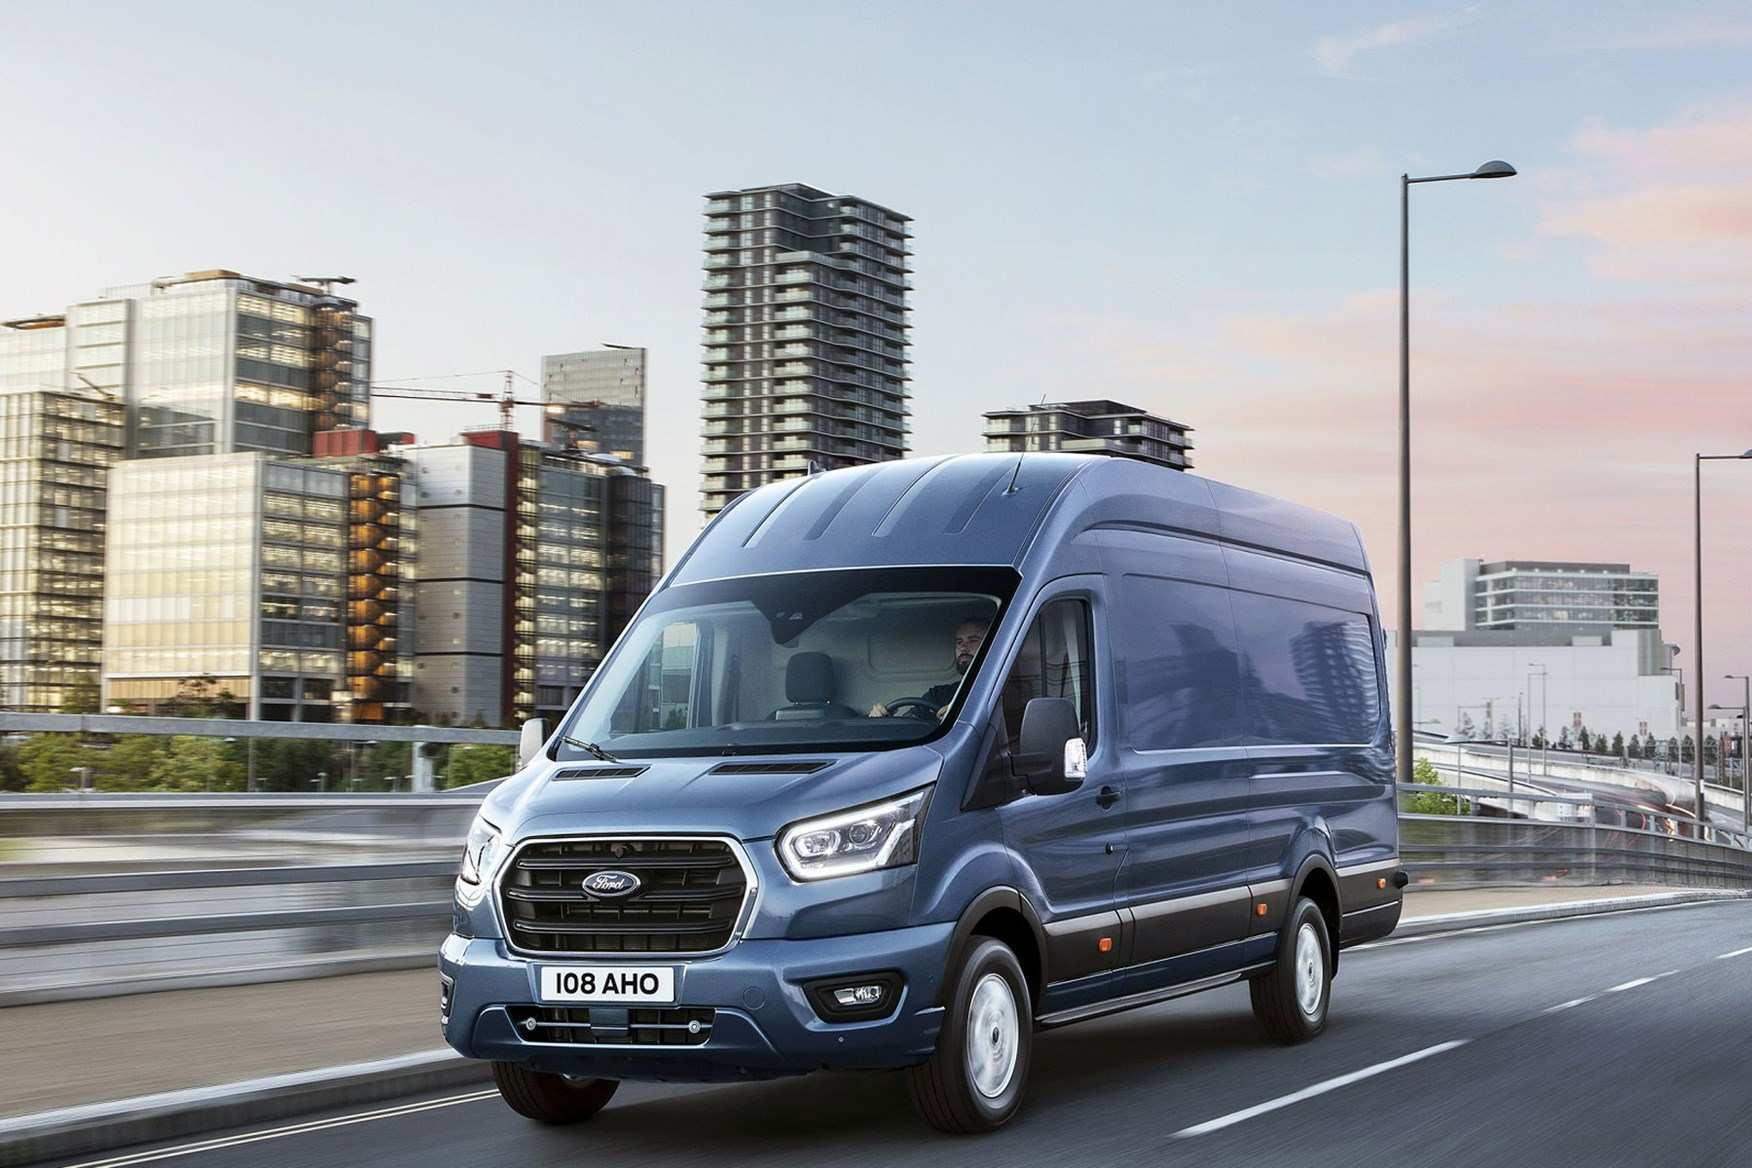 11 New Ford Transit 2019 Changes Redesign Price And Review Images by Ford Transit 2019 Changes Redesign Price And Review